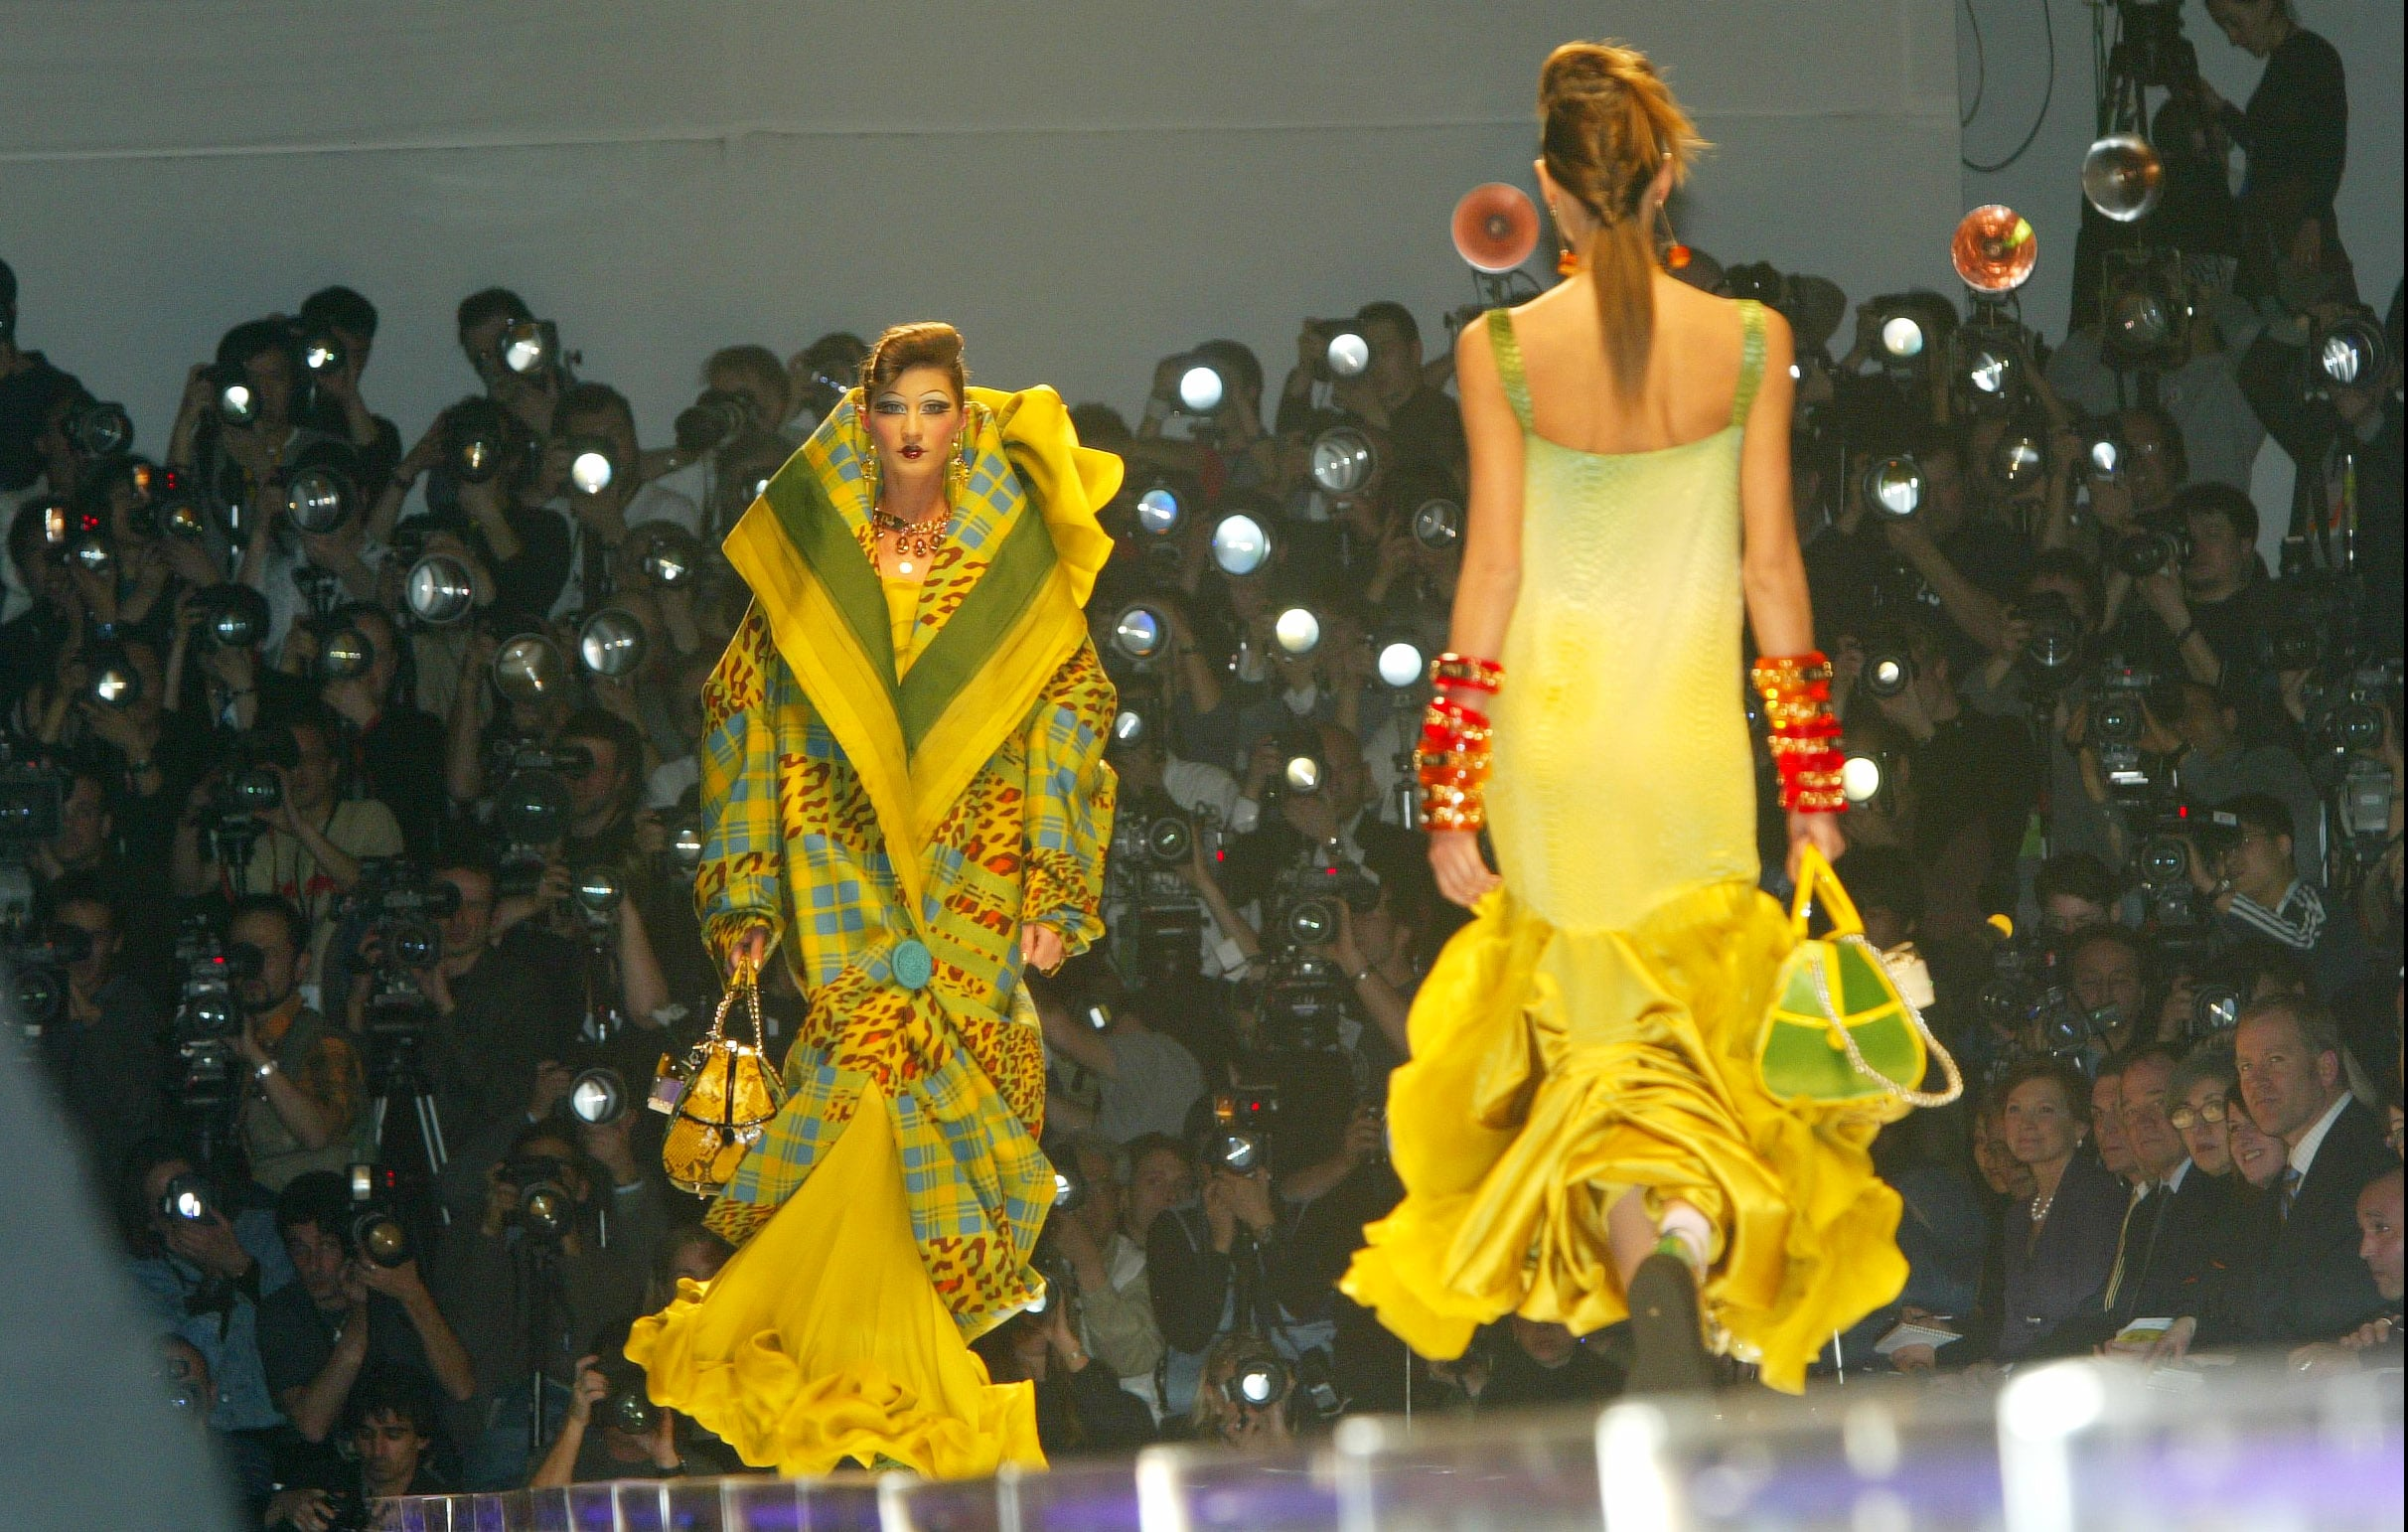 Models on the catwalk in the Dior Fall/Winter 2004 runway show